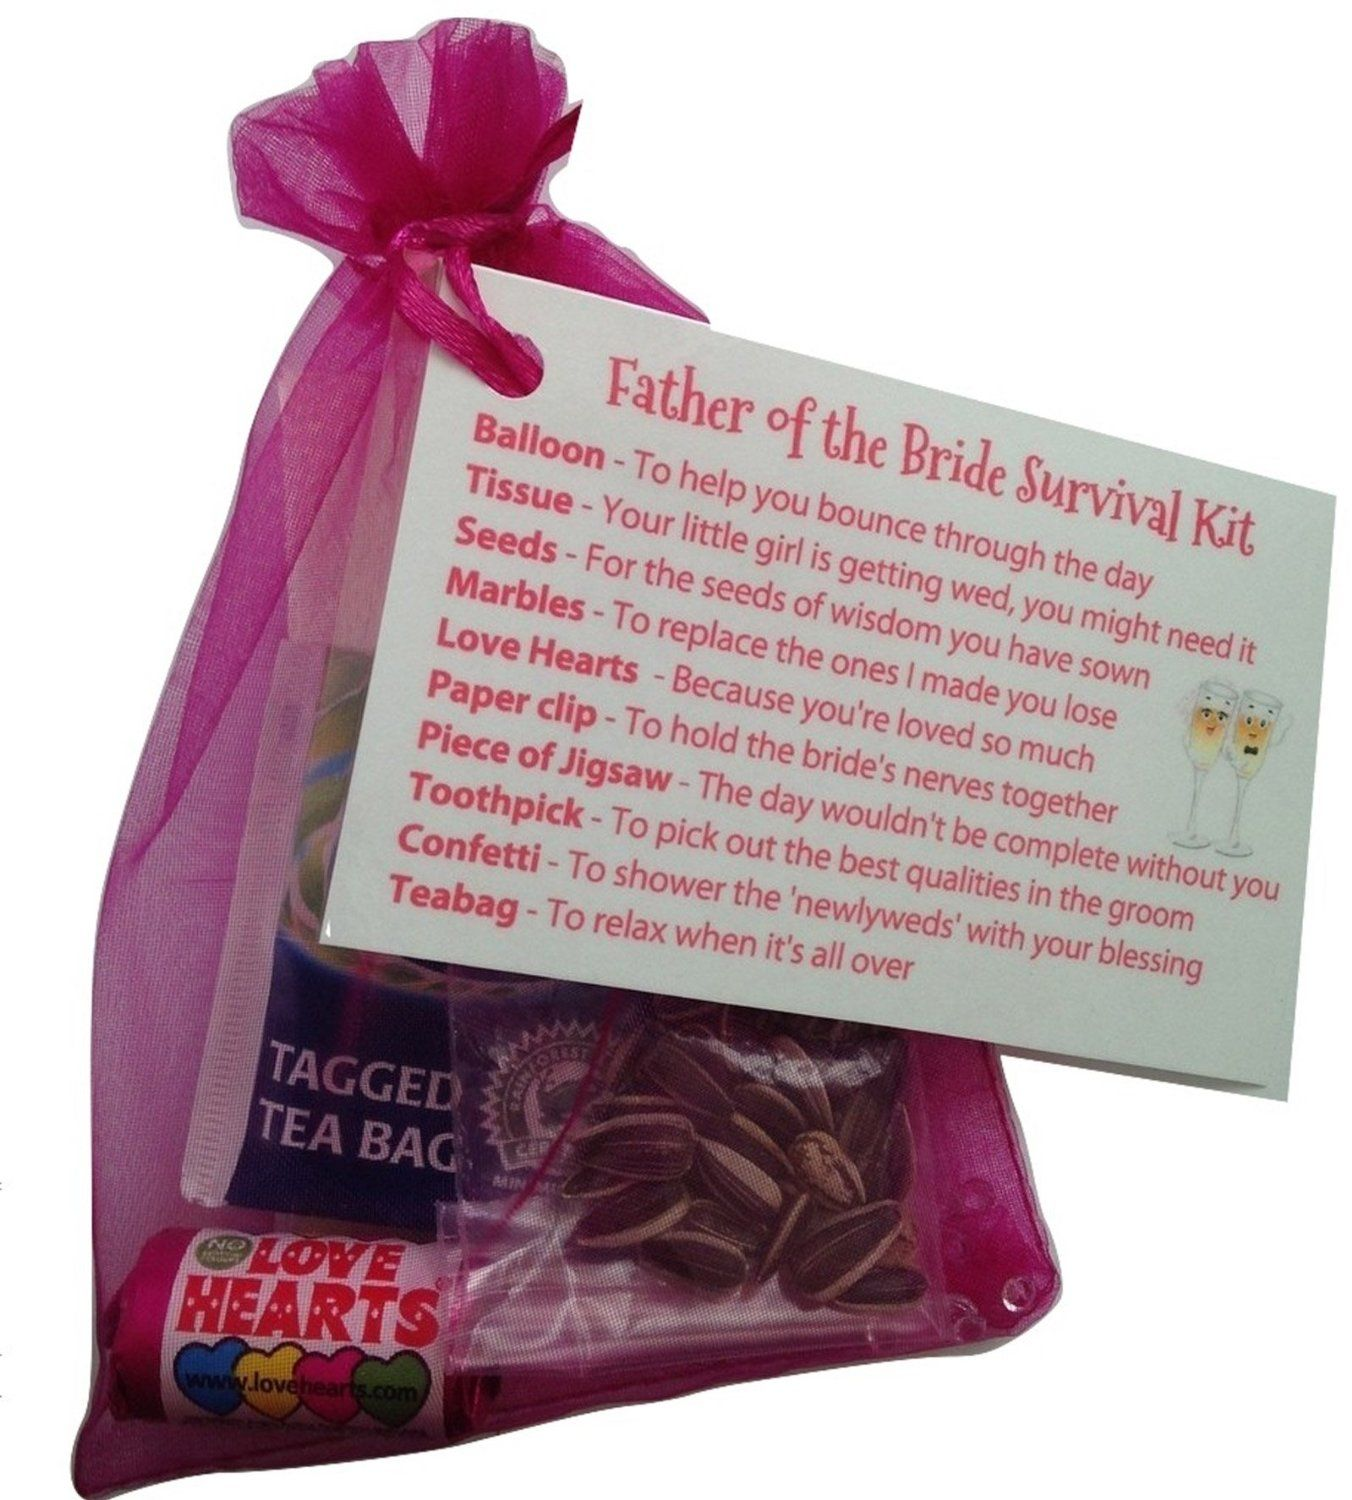 Father Of The Bride Survival Kit In FuschiaThank You Gift Card Keepsake